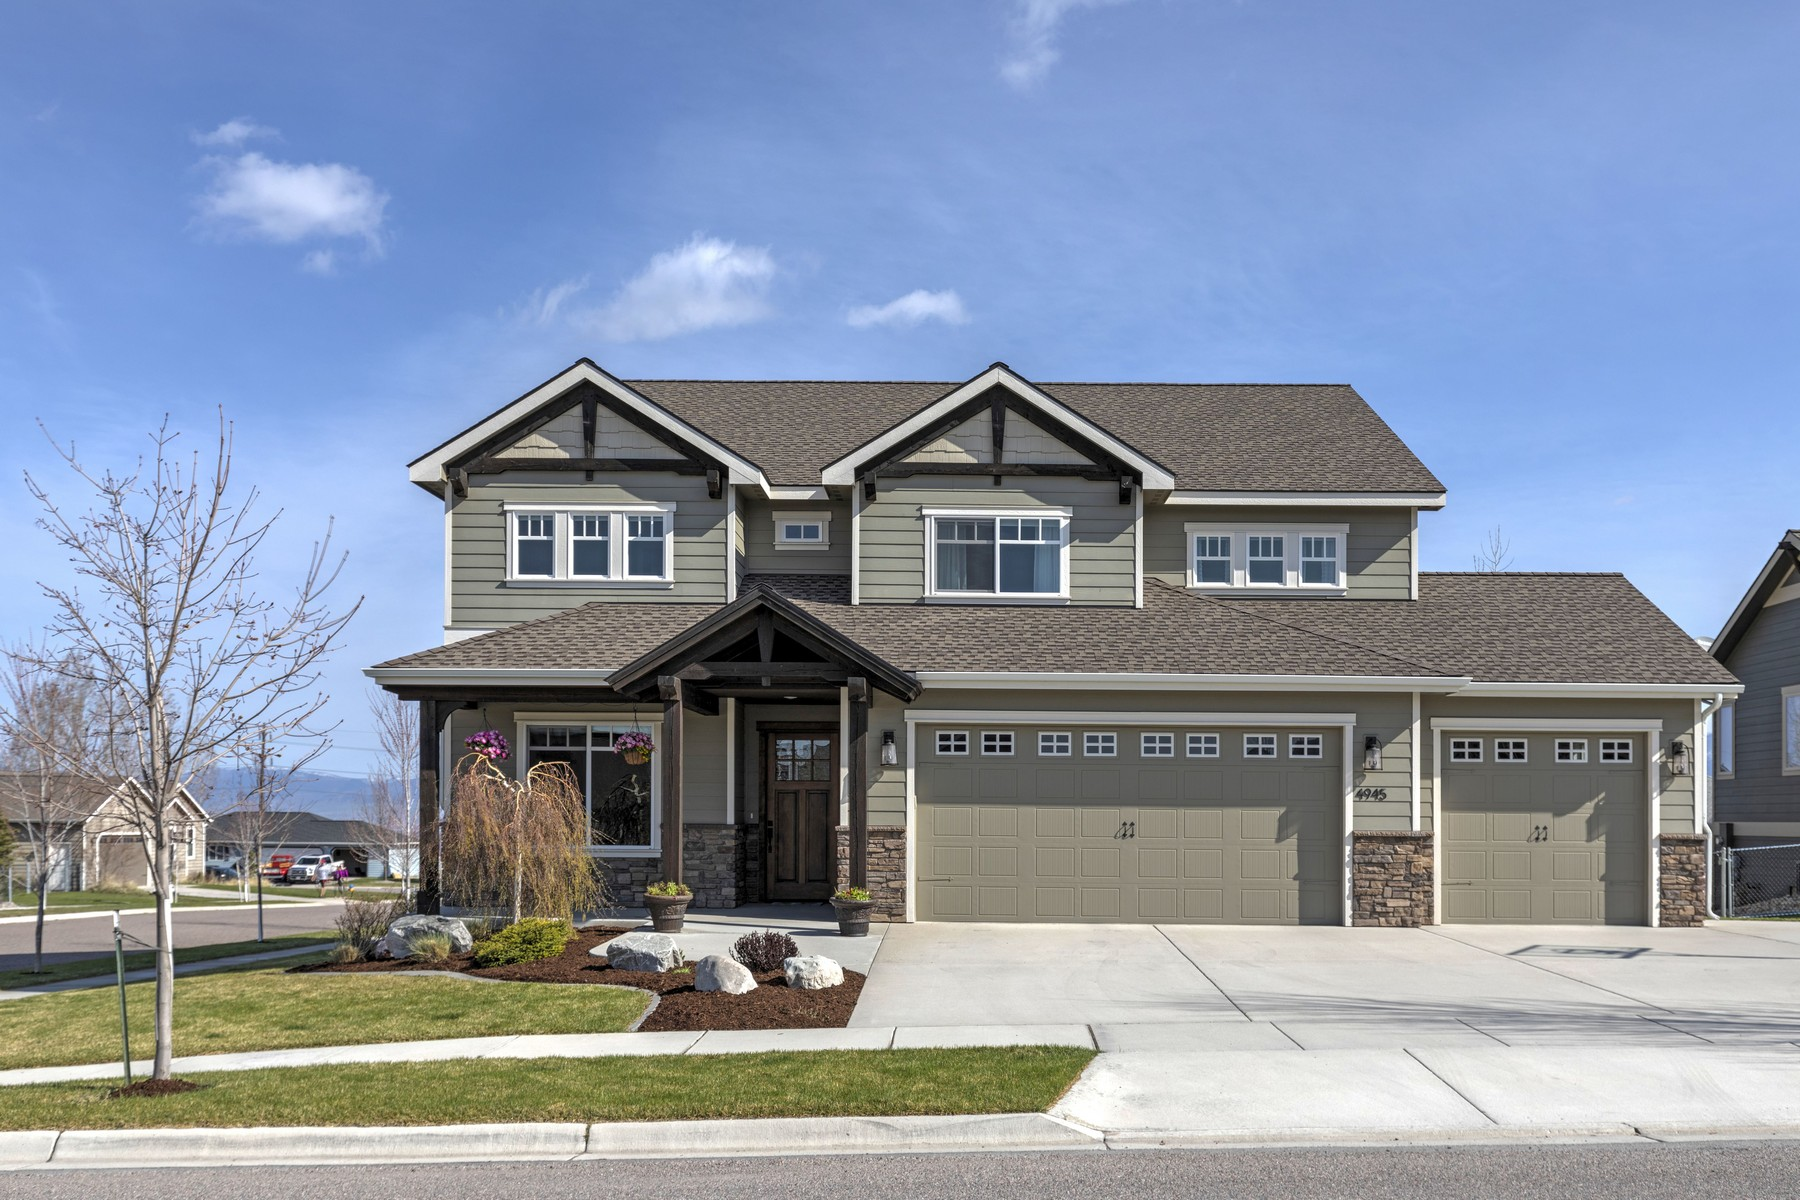 Single Family Homes for Sale at 4945 Jeff Drive Missoula, Montana 59803 United States